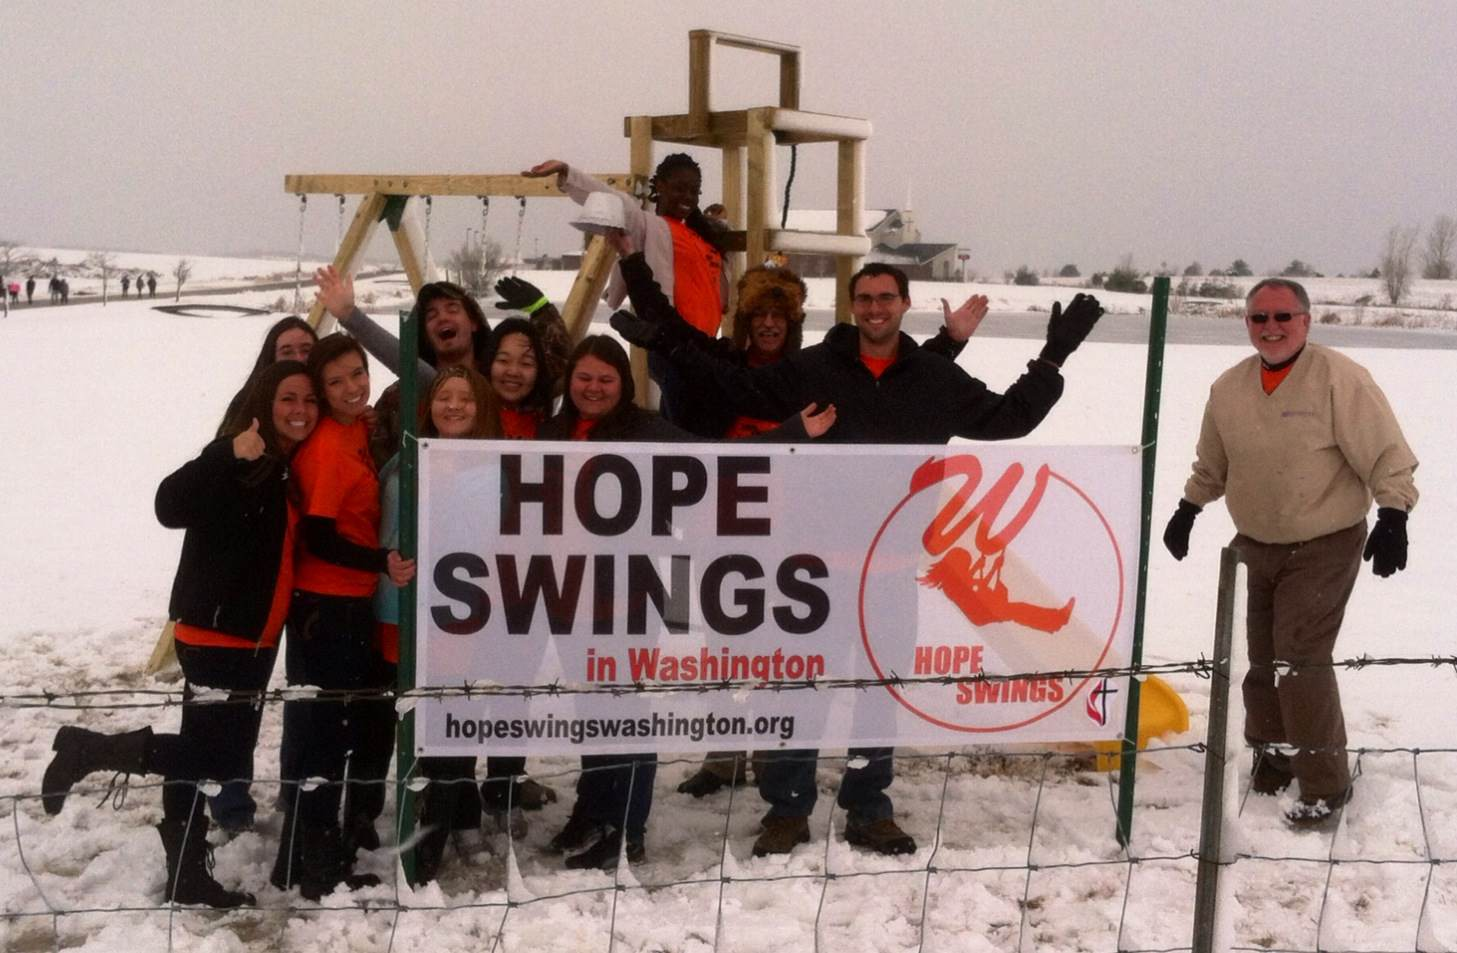 McKendree University students with a swing set prototype in Washington